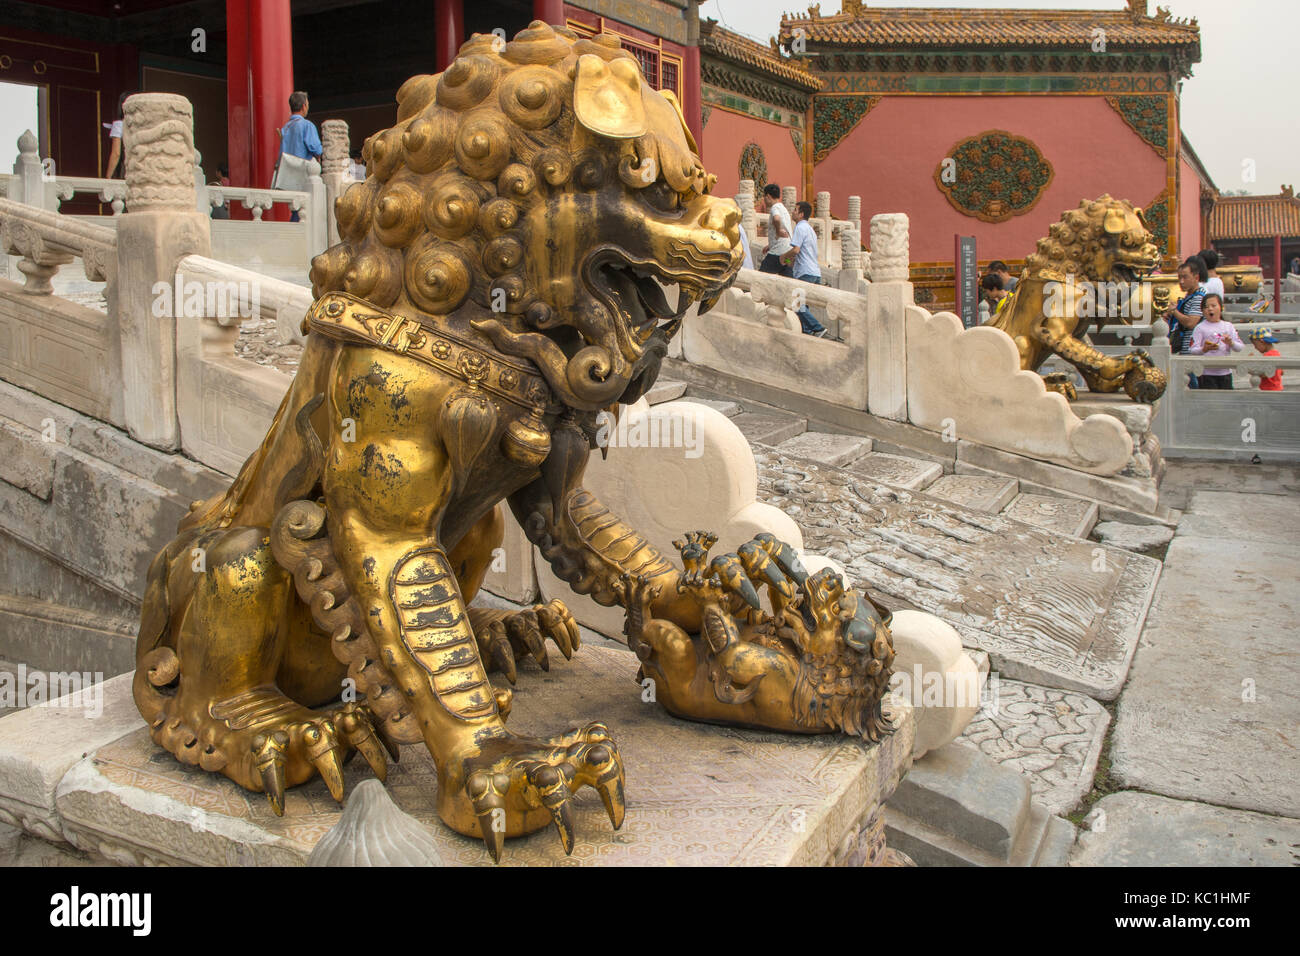 Golden Lion at Hall of Preserving Harmony in Forbidden City, Beijing, China - Stock Image